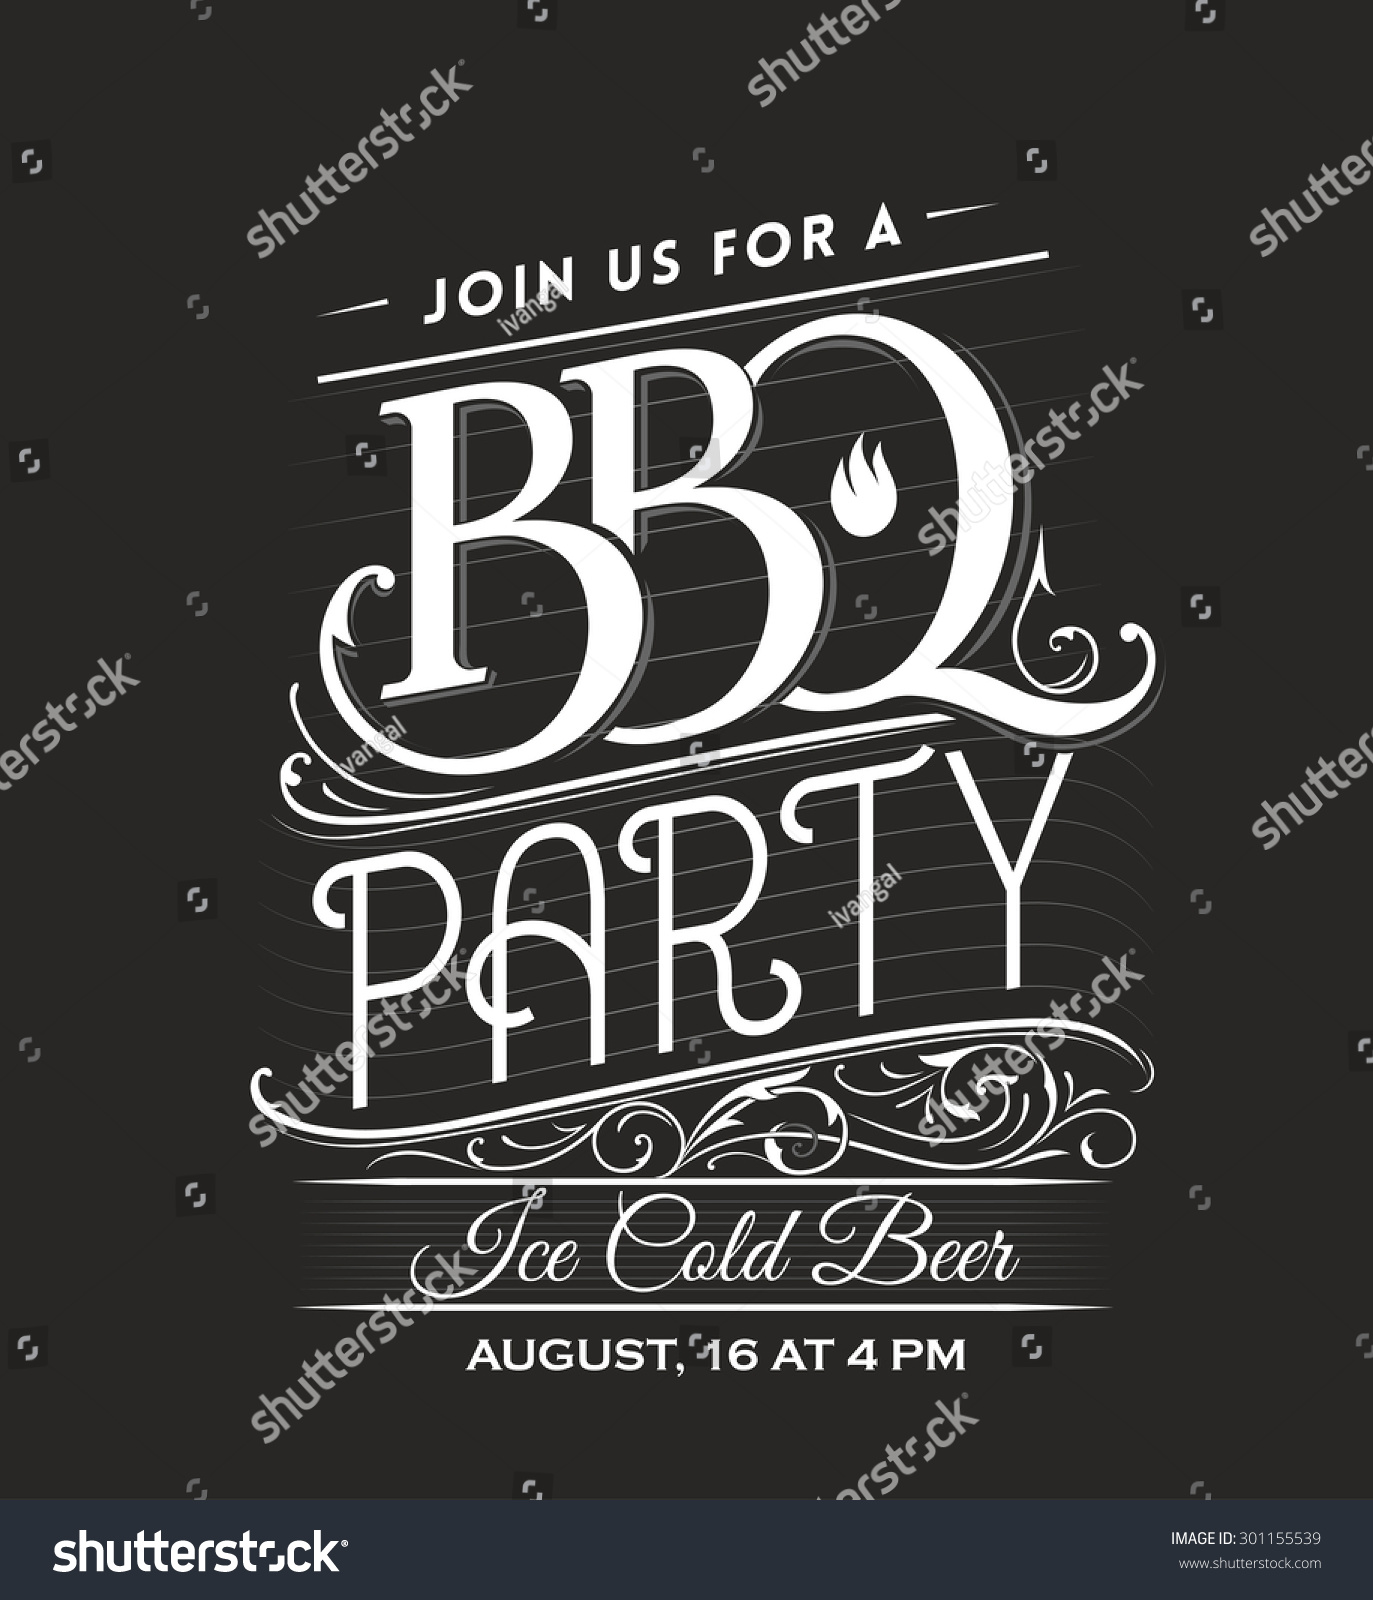 bbq invitation template - wowcircle.tk